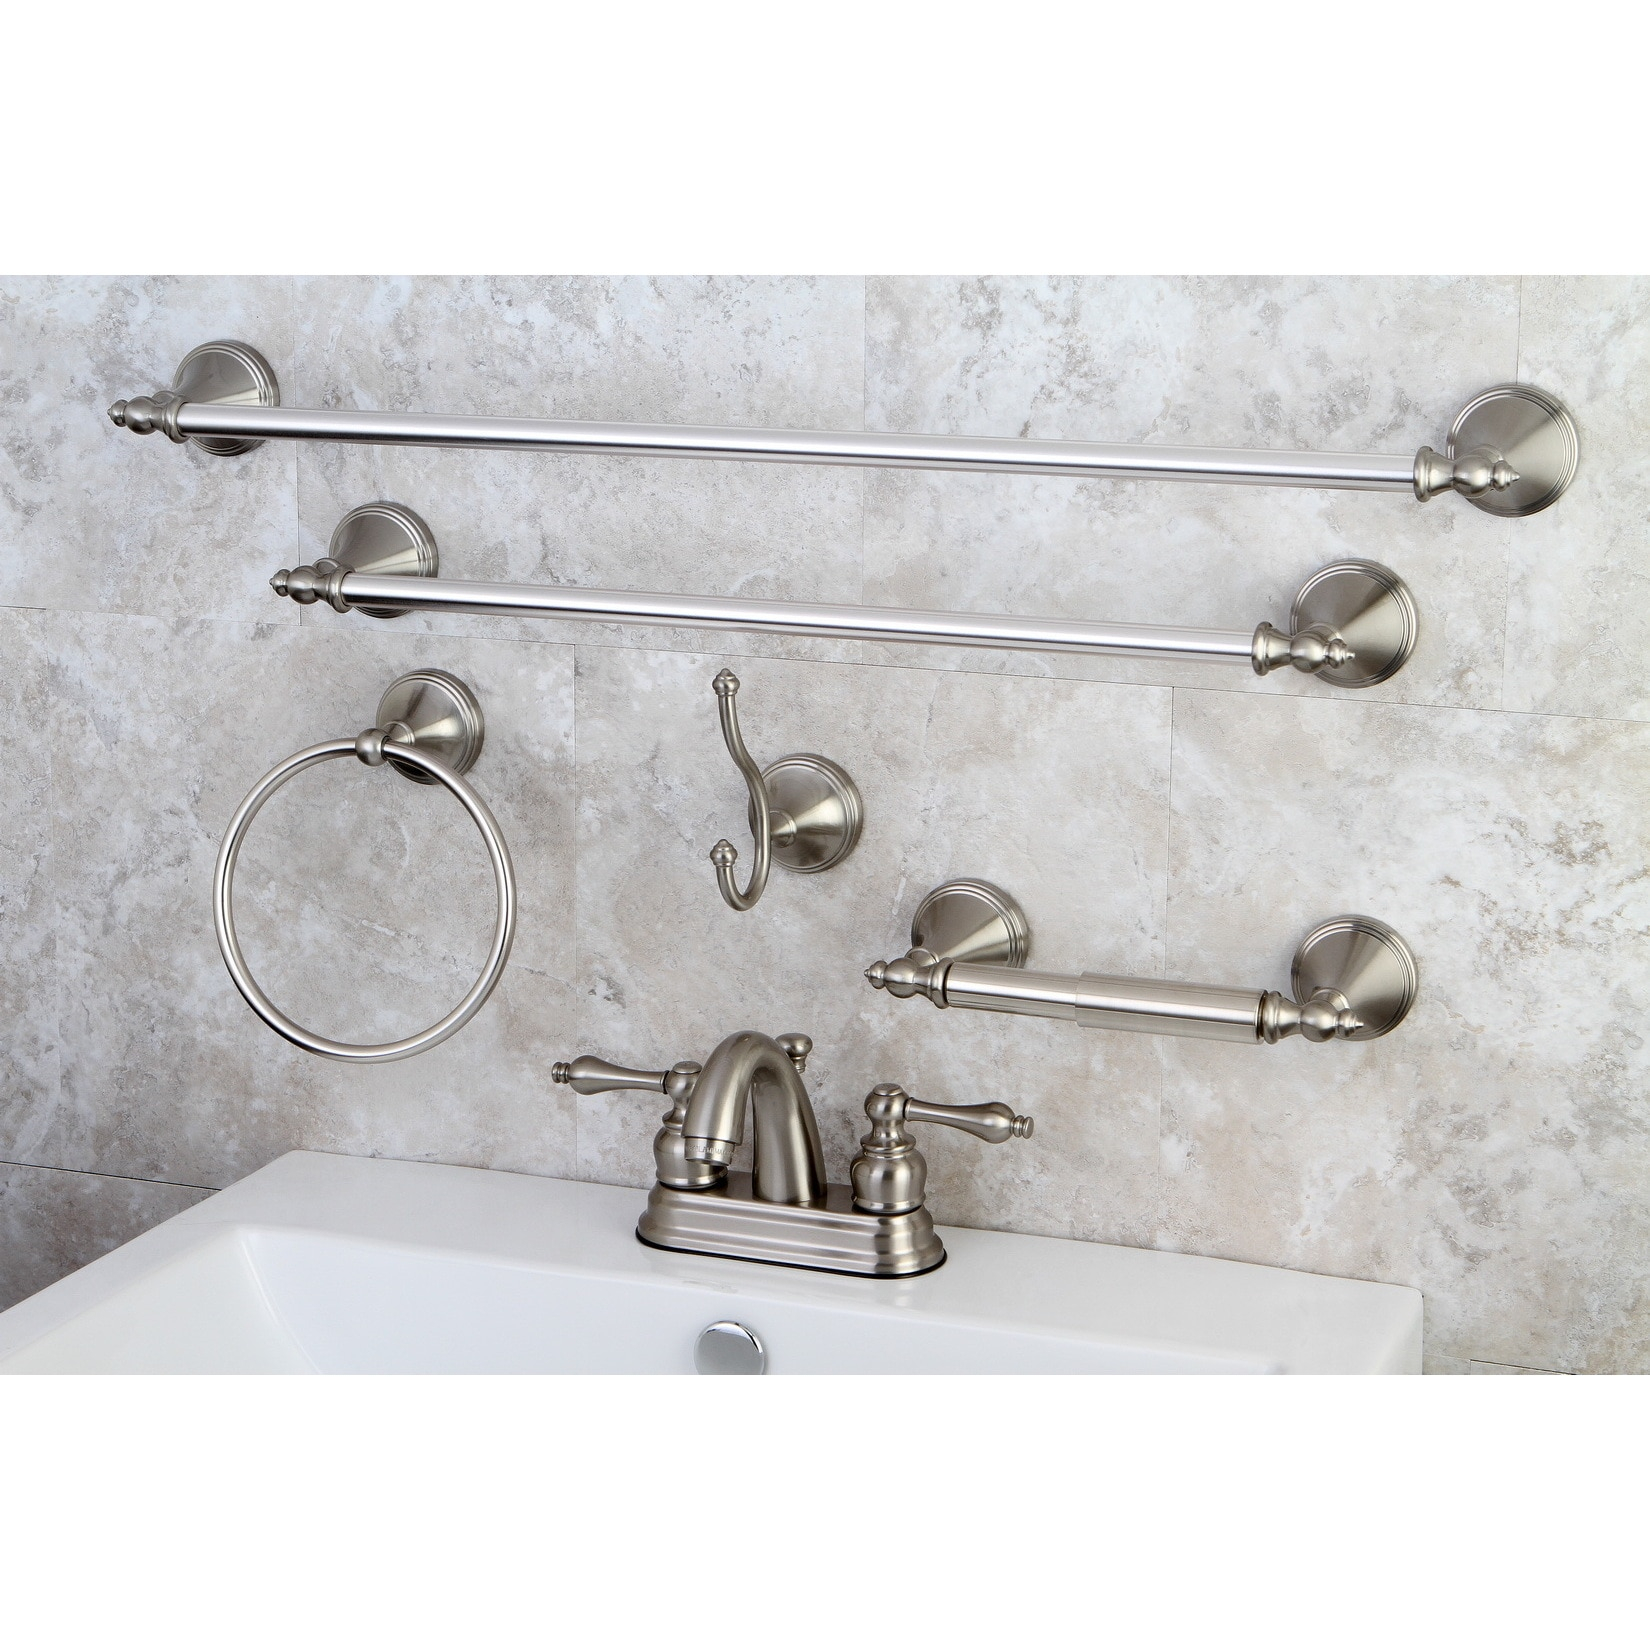 Kingston Brass Modern Satin Nickel Metal Faucet Towel Rack Bathroom Faucet Bathroom Accessory Set regarding proportions 1650 X 1650